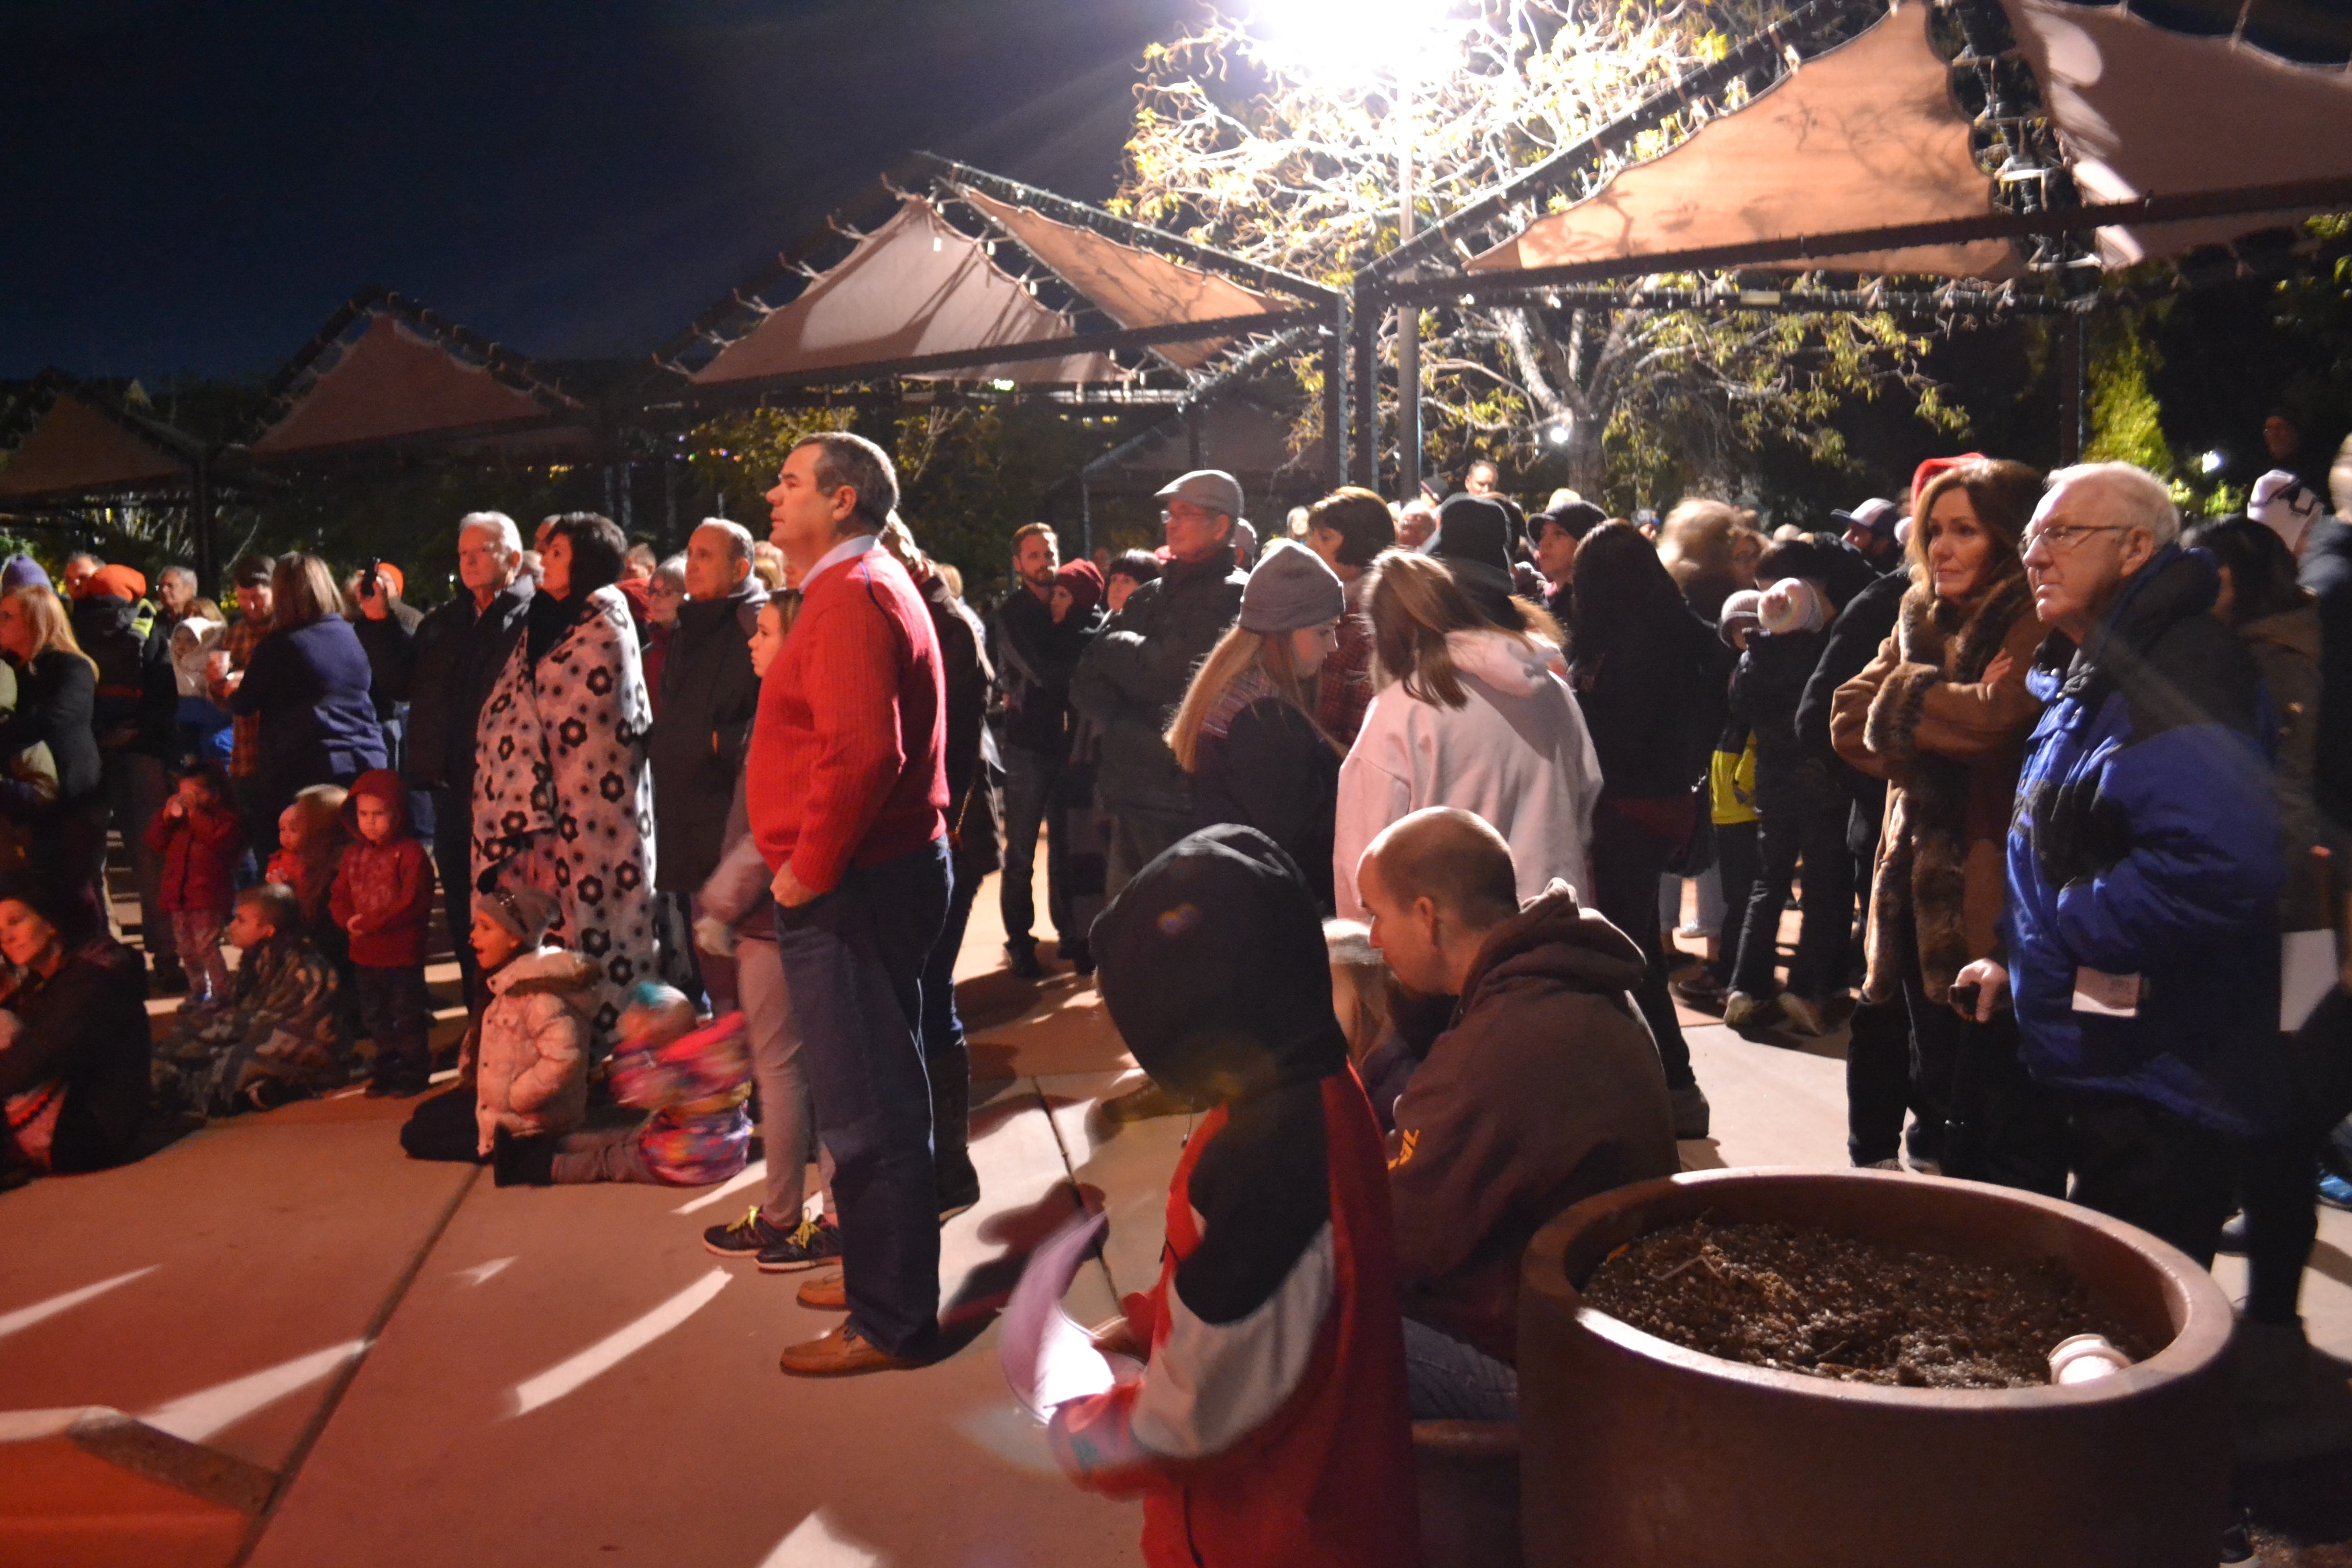 Guests watch performers sing at the St. George Town Square Christmas Lighting, St. George, Utah, Nov. 28, 2016 | Photo by Joseph Witham, St. George News